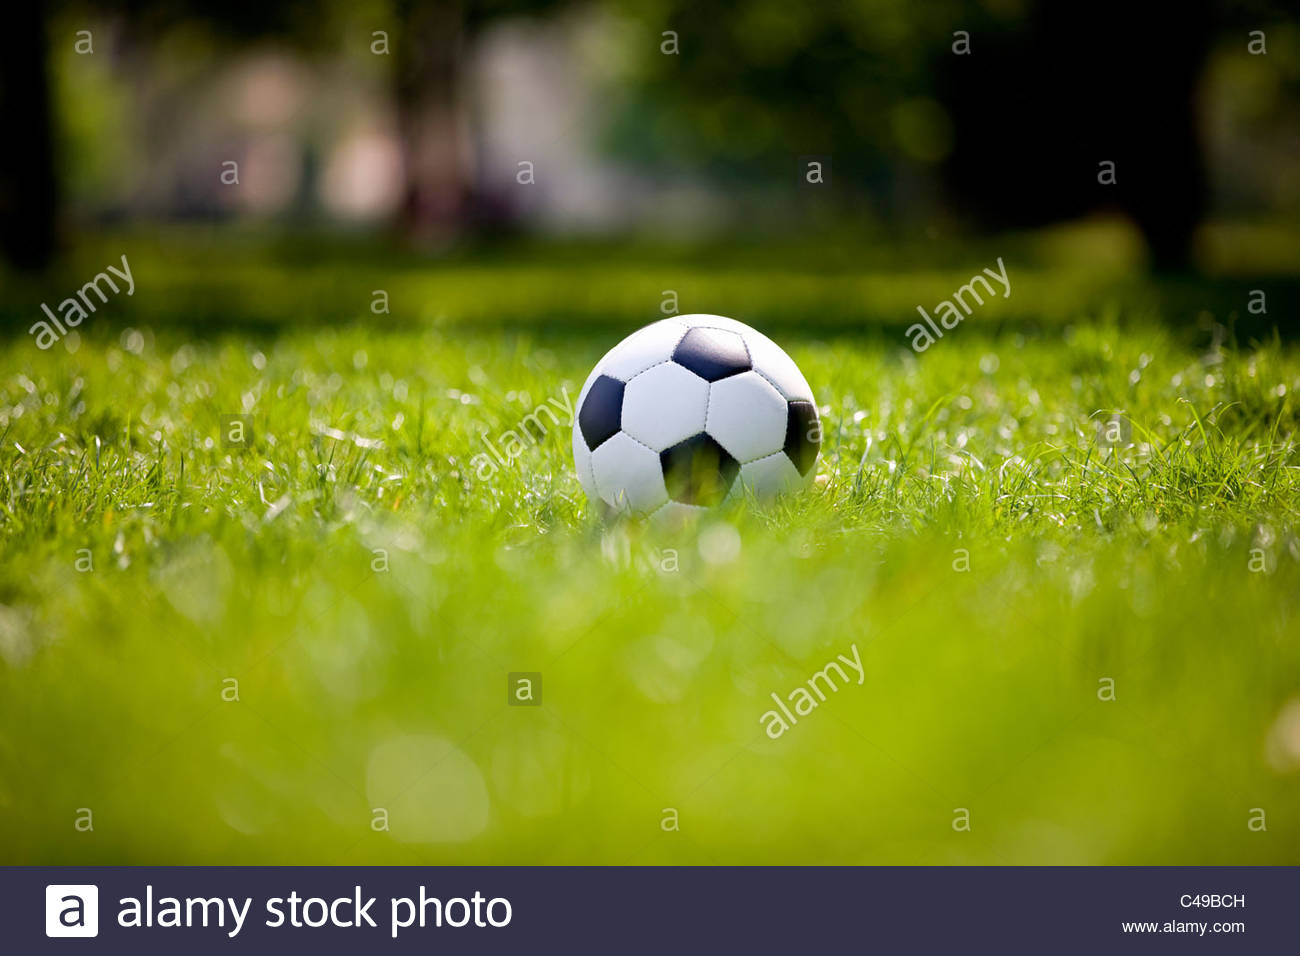 A football on grass - Stock Image